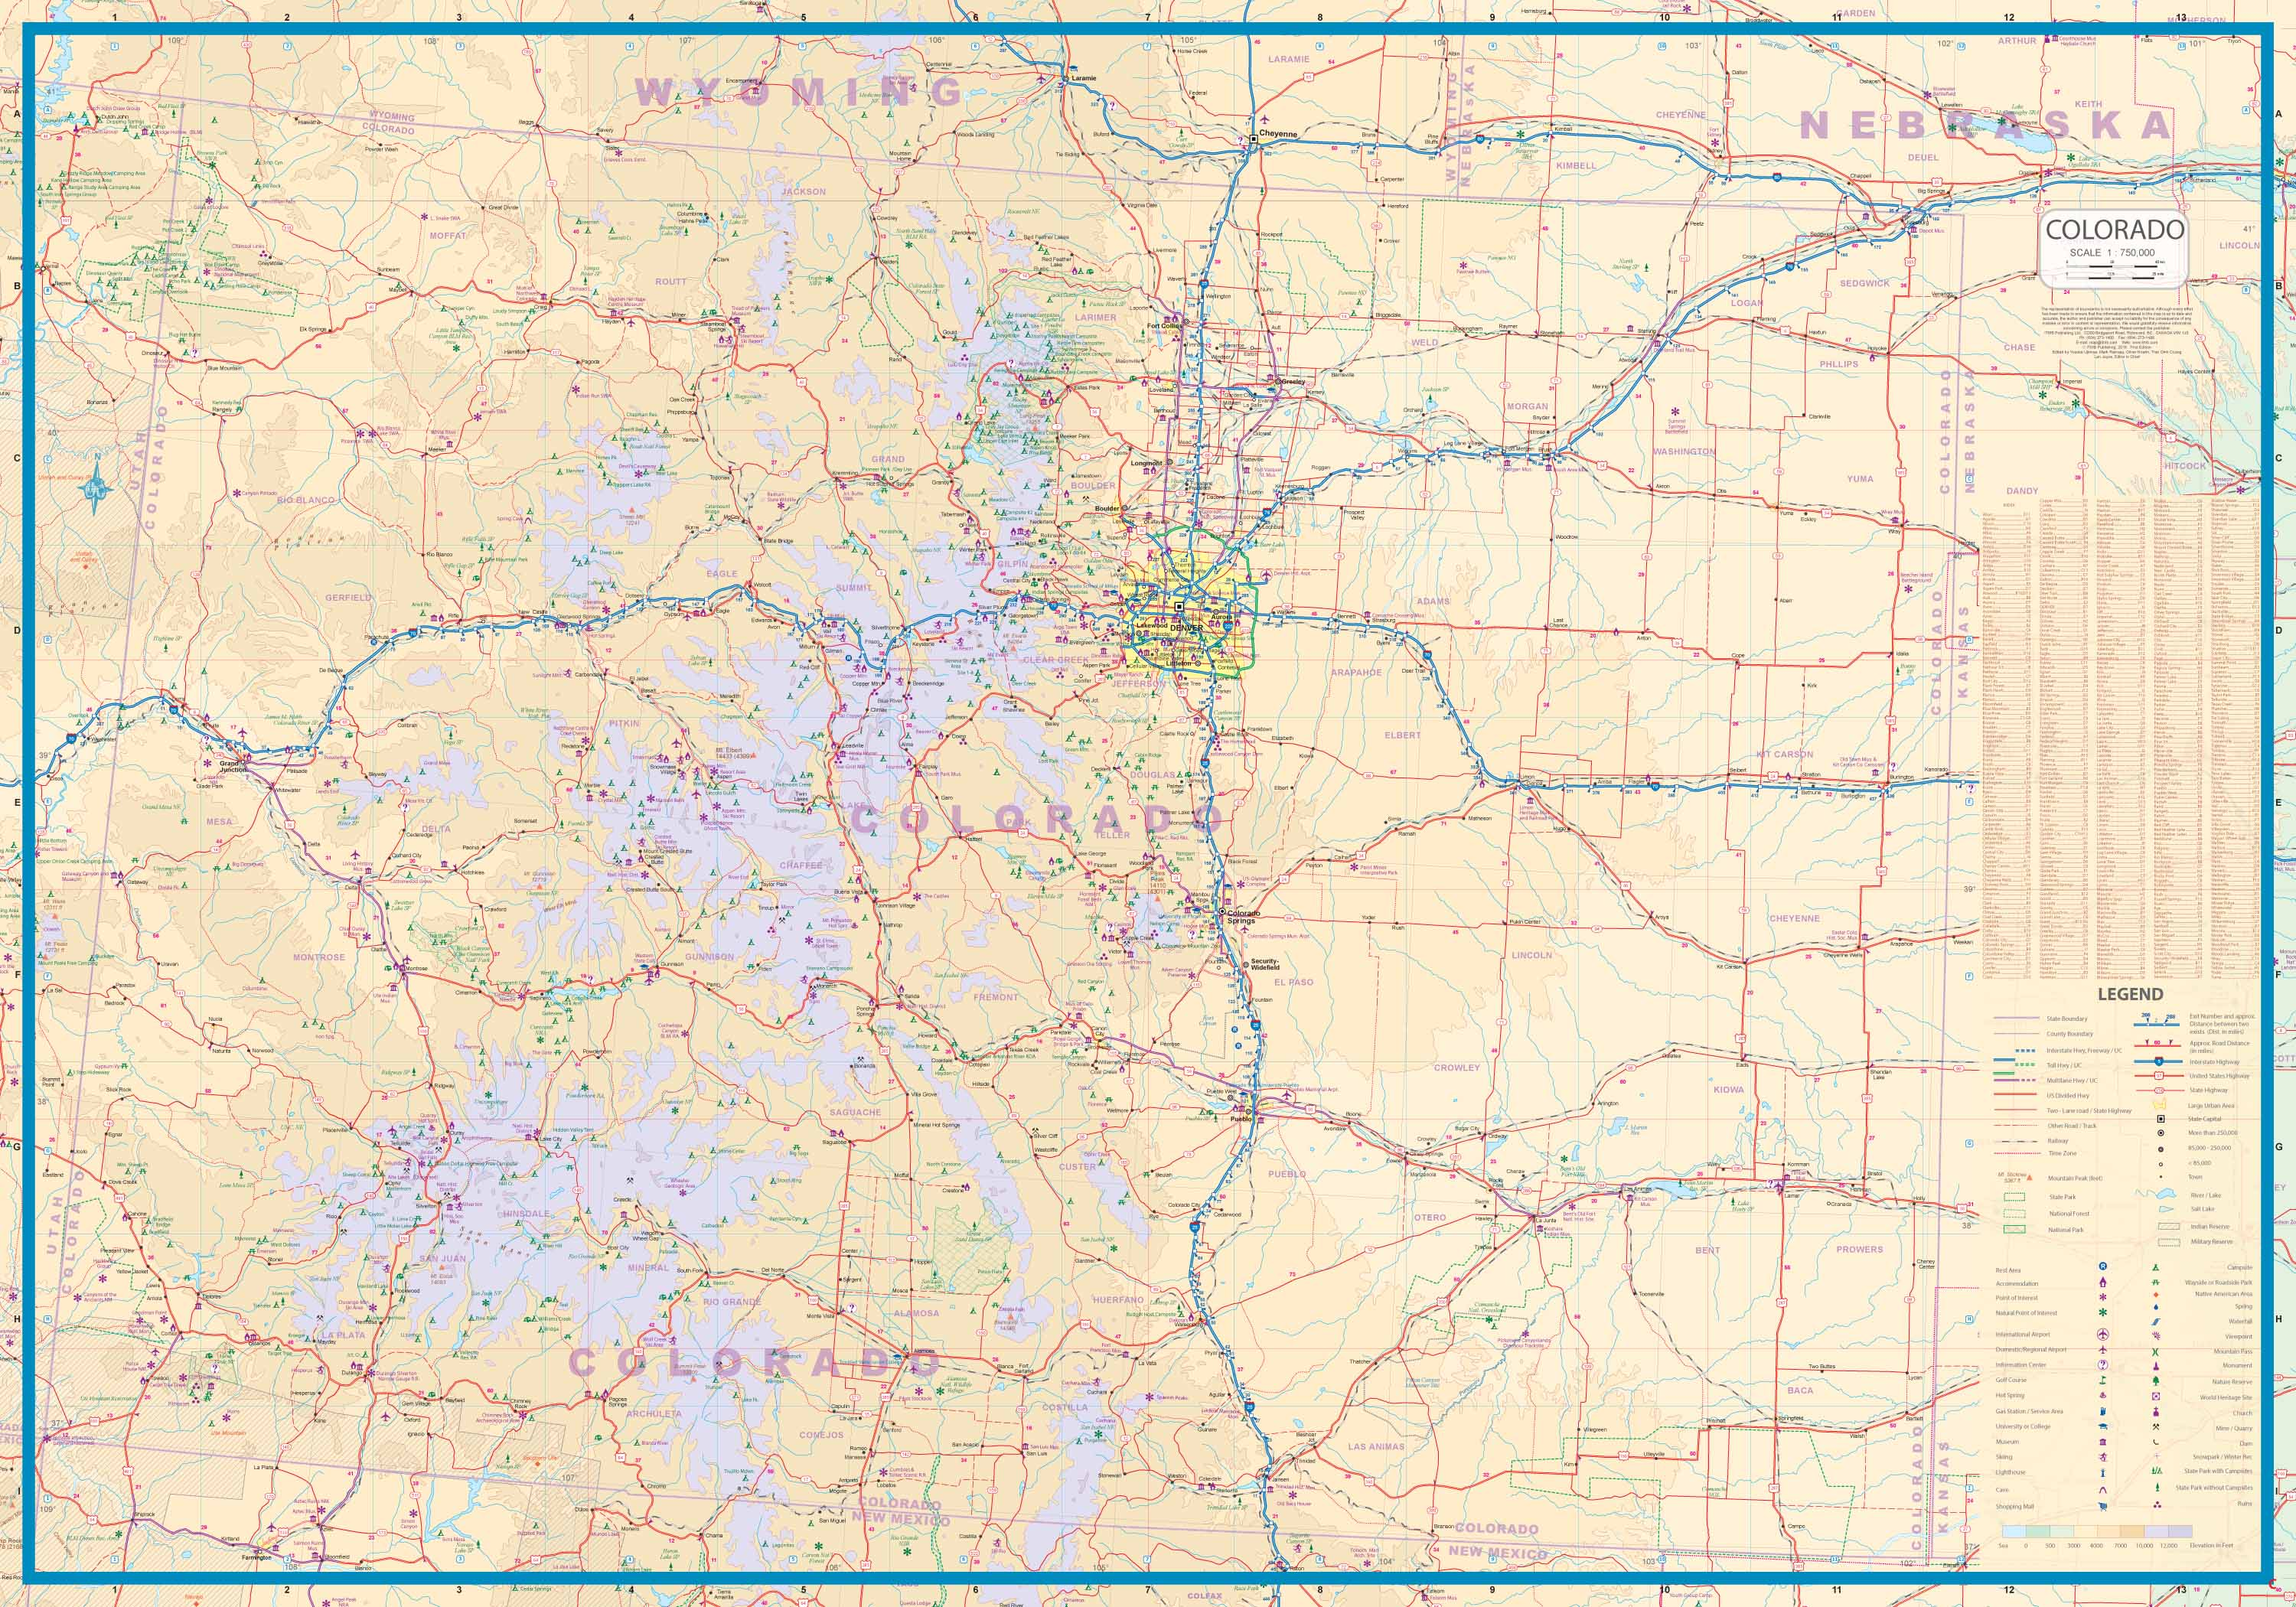 Maps for travel, City Maps, Road Maps, Guides, Globes, Topographic Maps